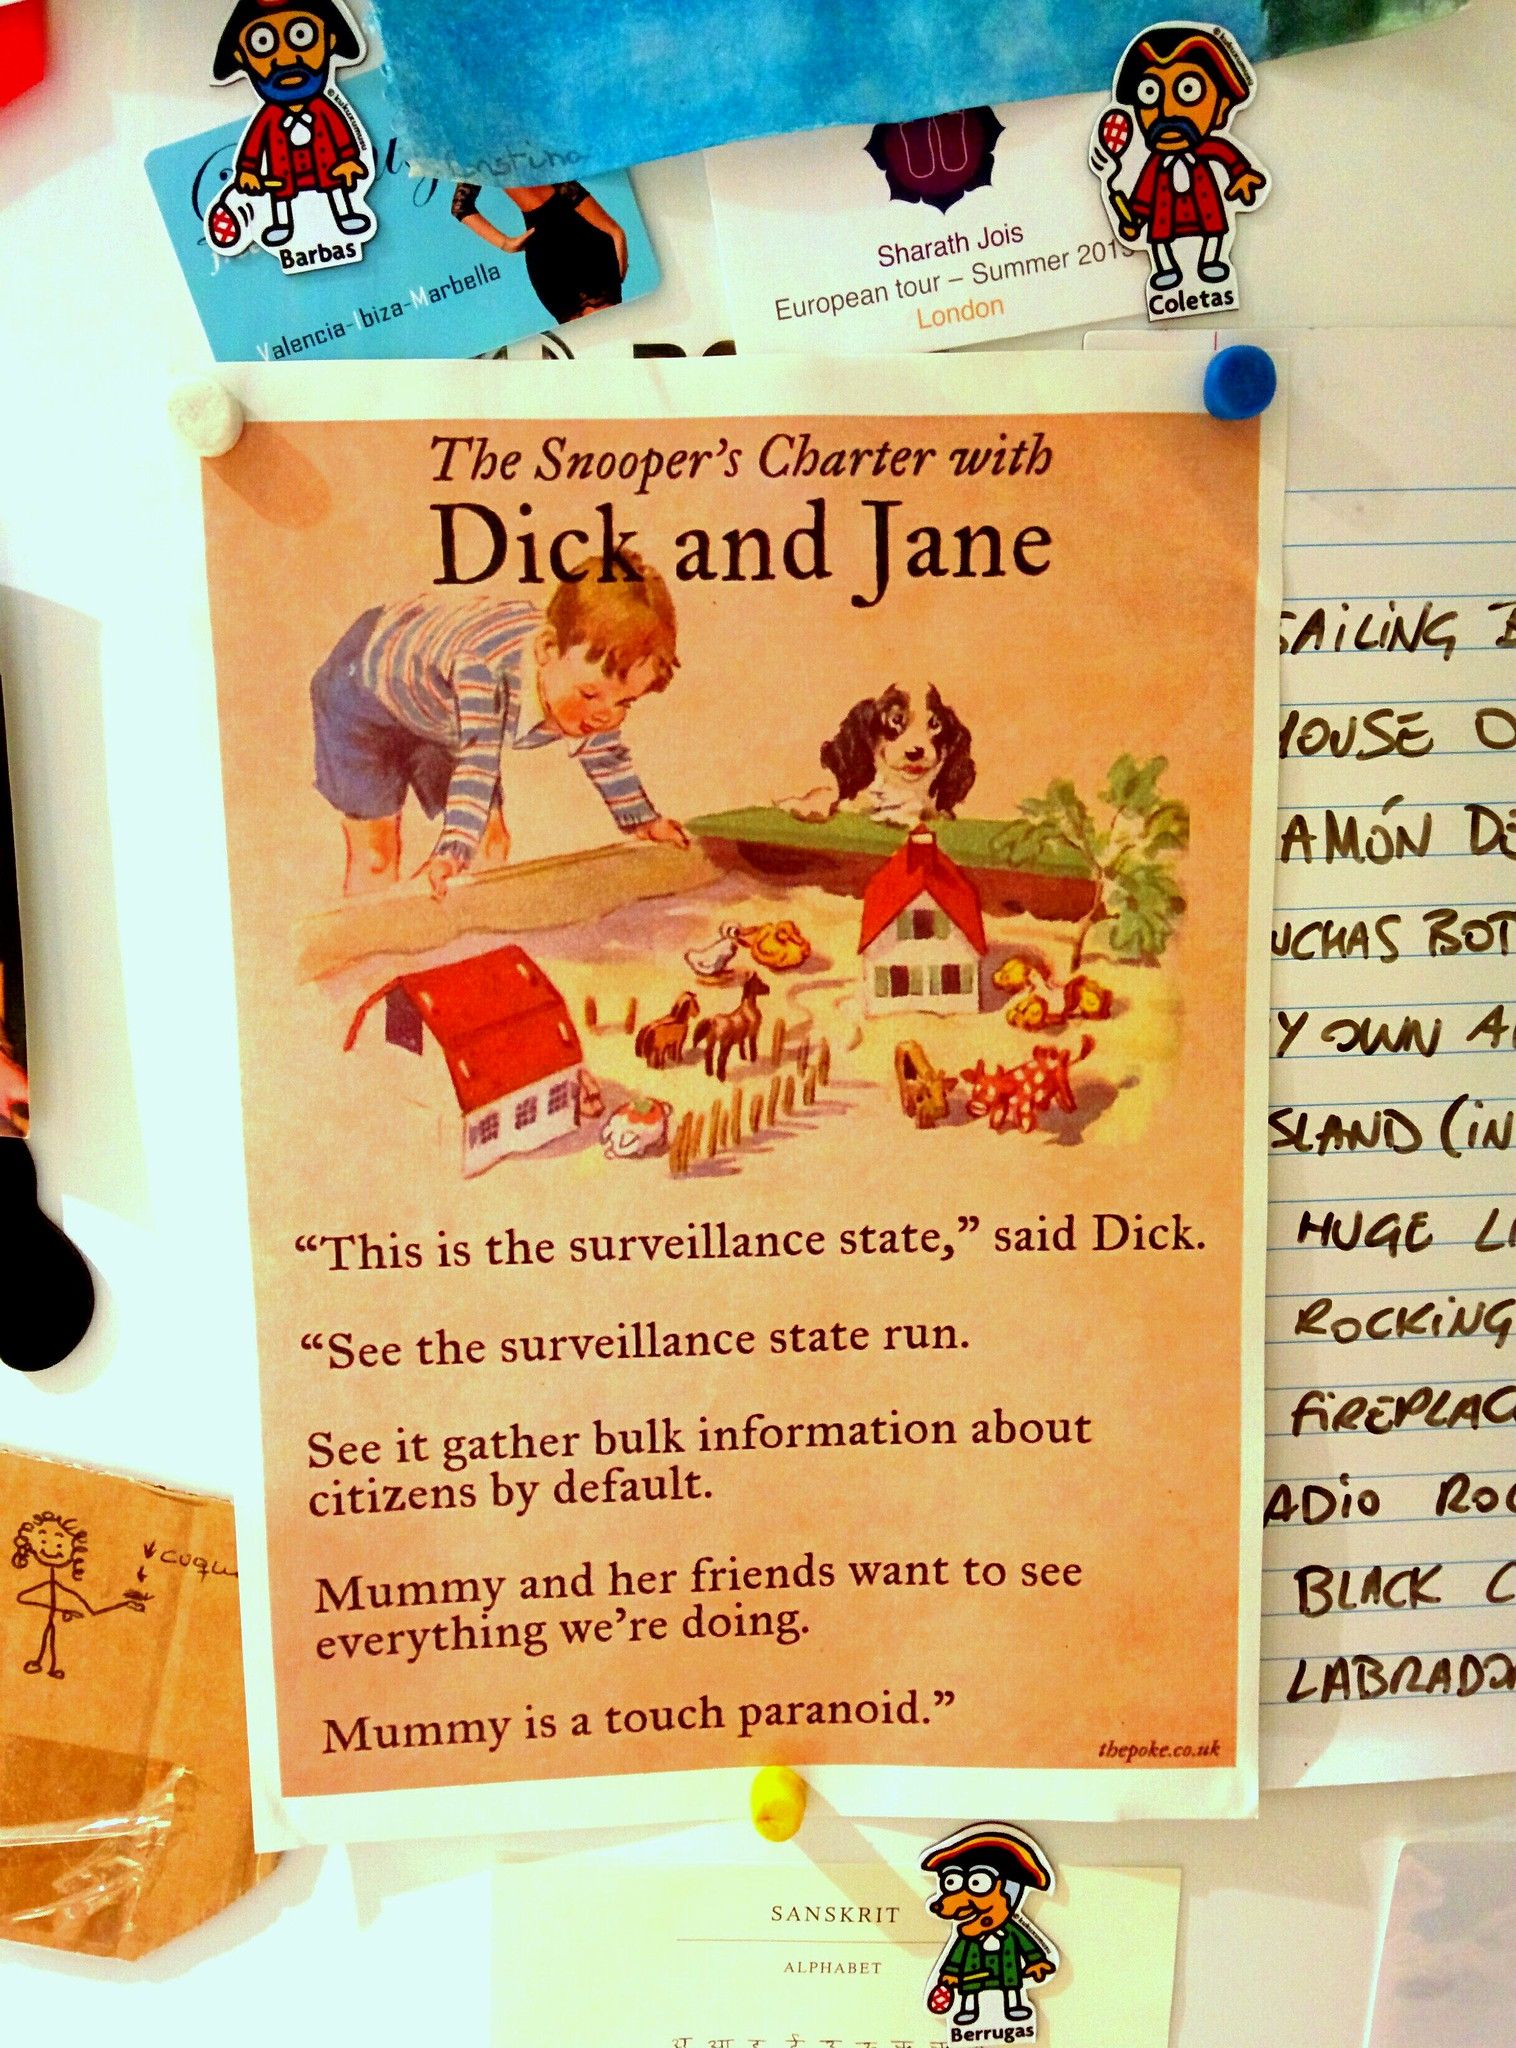 Dick and Jane go to visit the surveillance state.